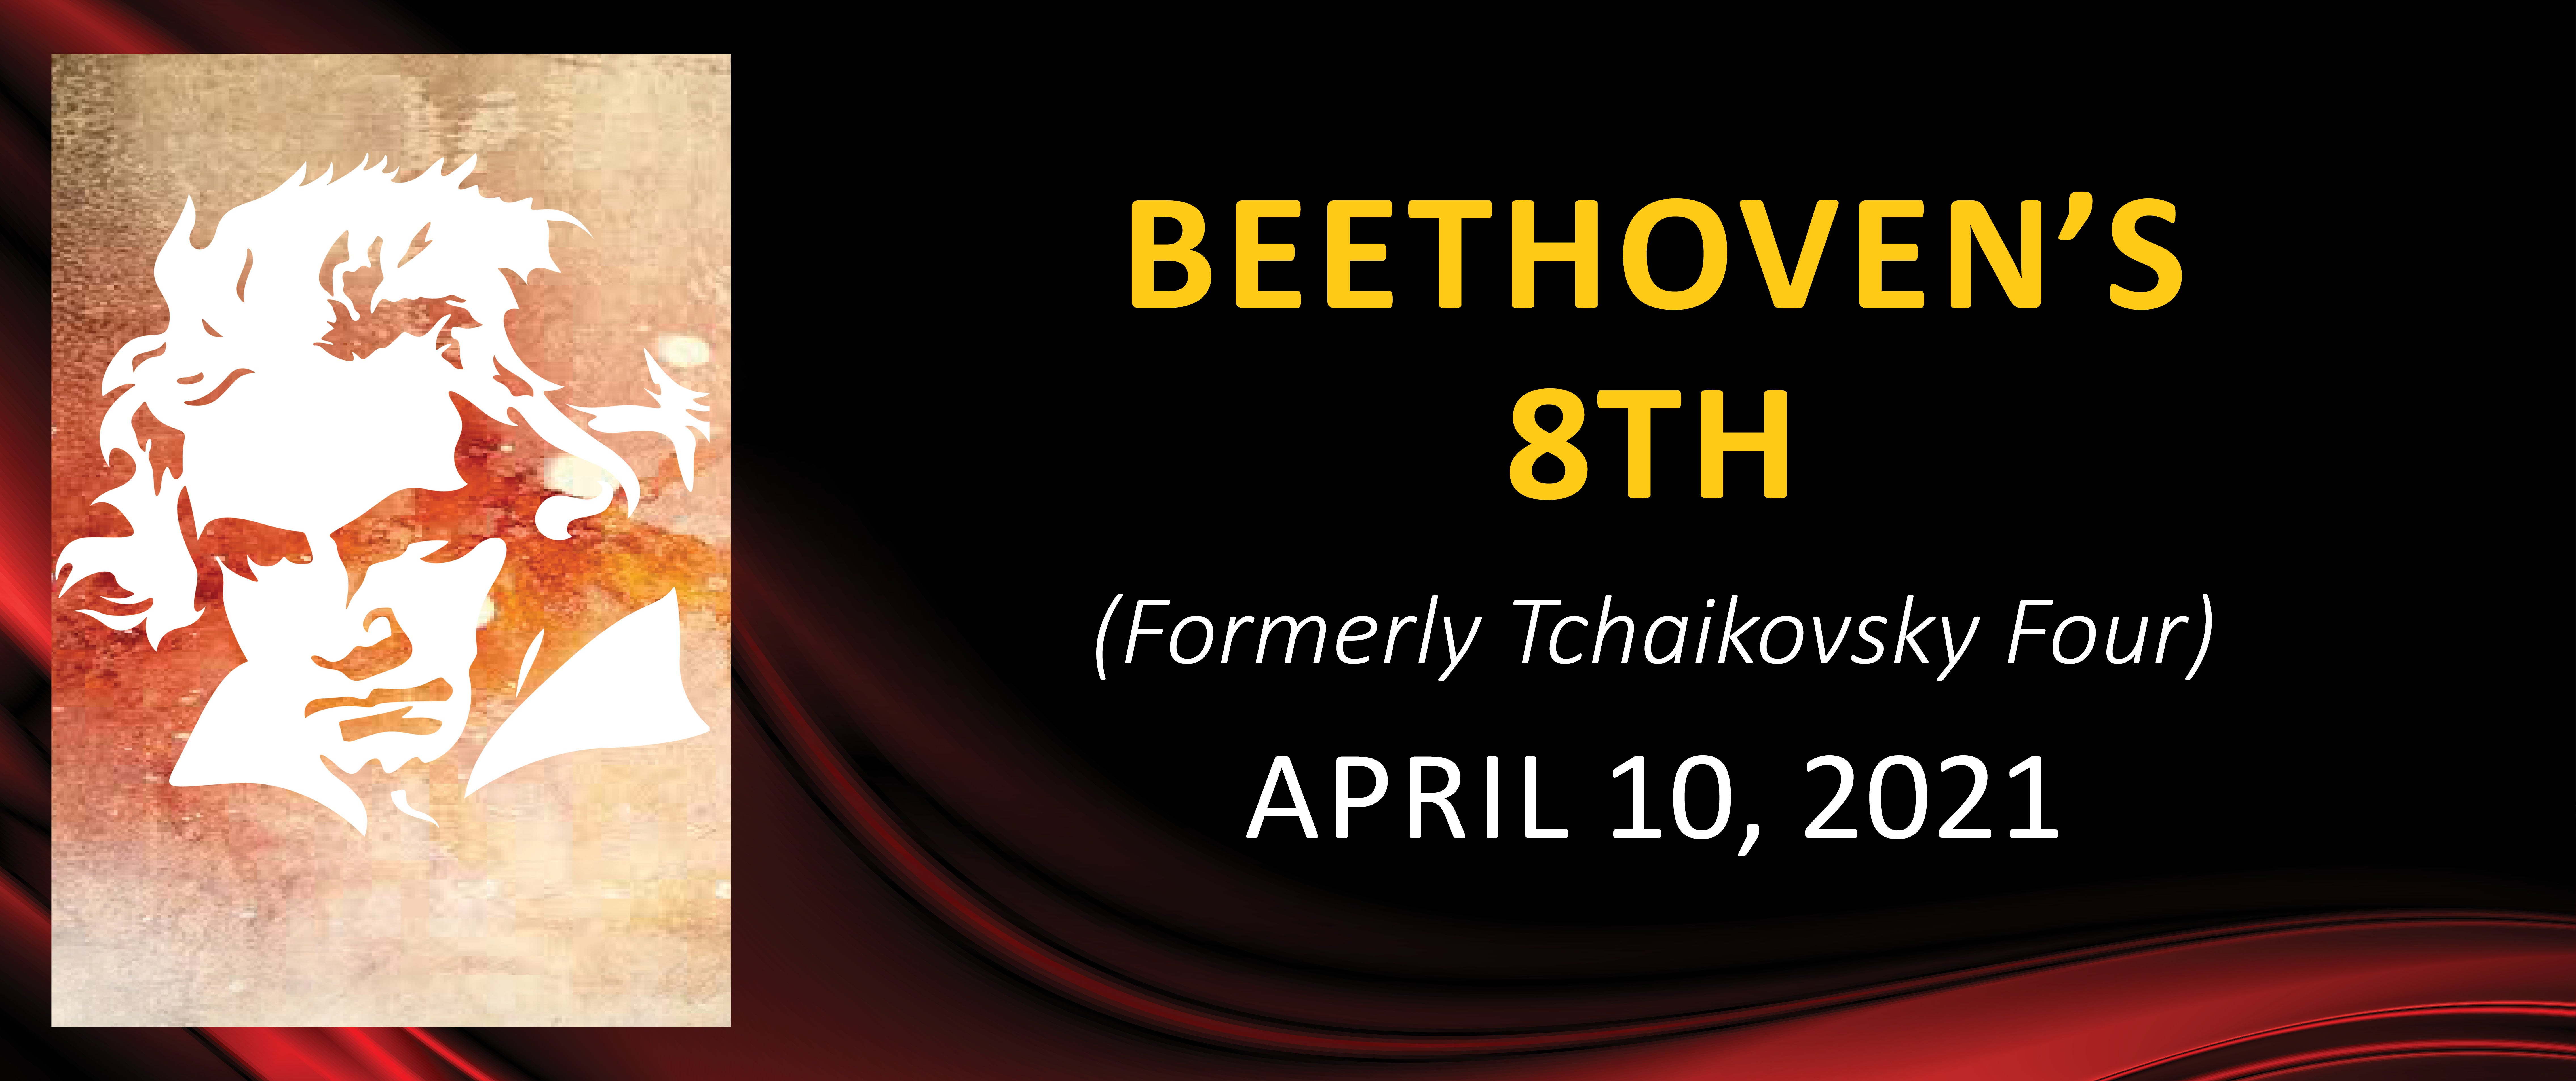 Beethoven's 8th